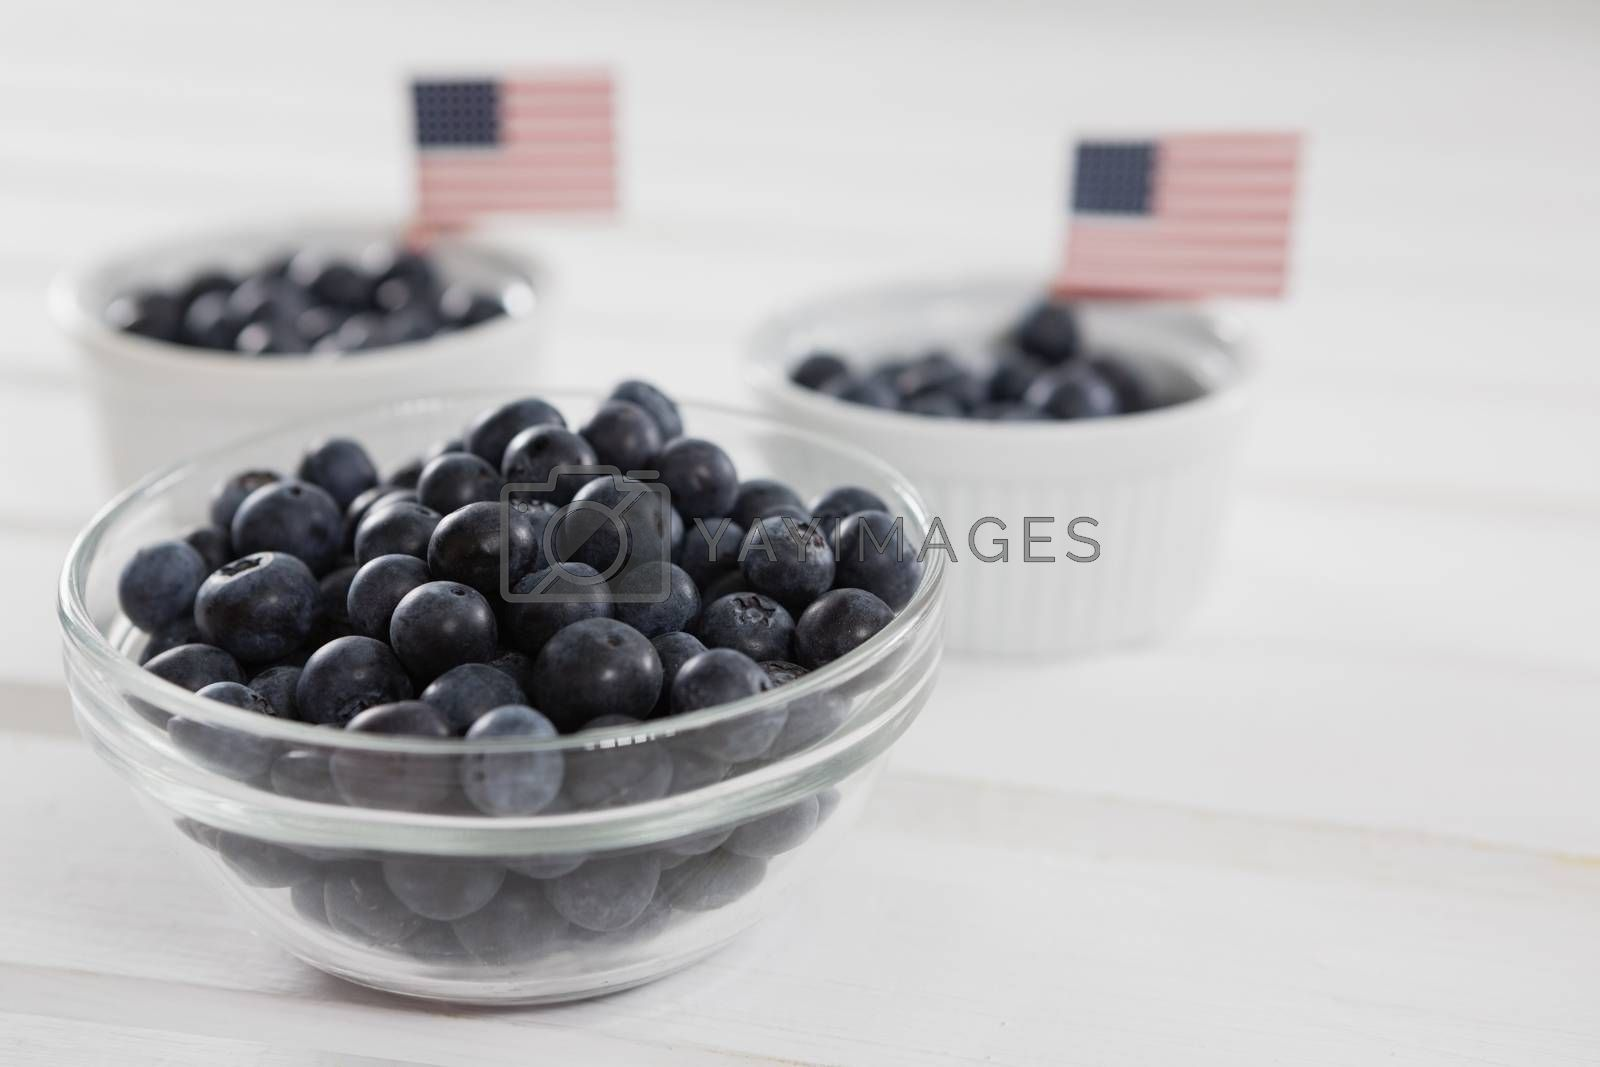 Black berries in bowls with 4th july theme on wooden table